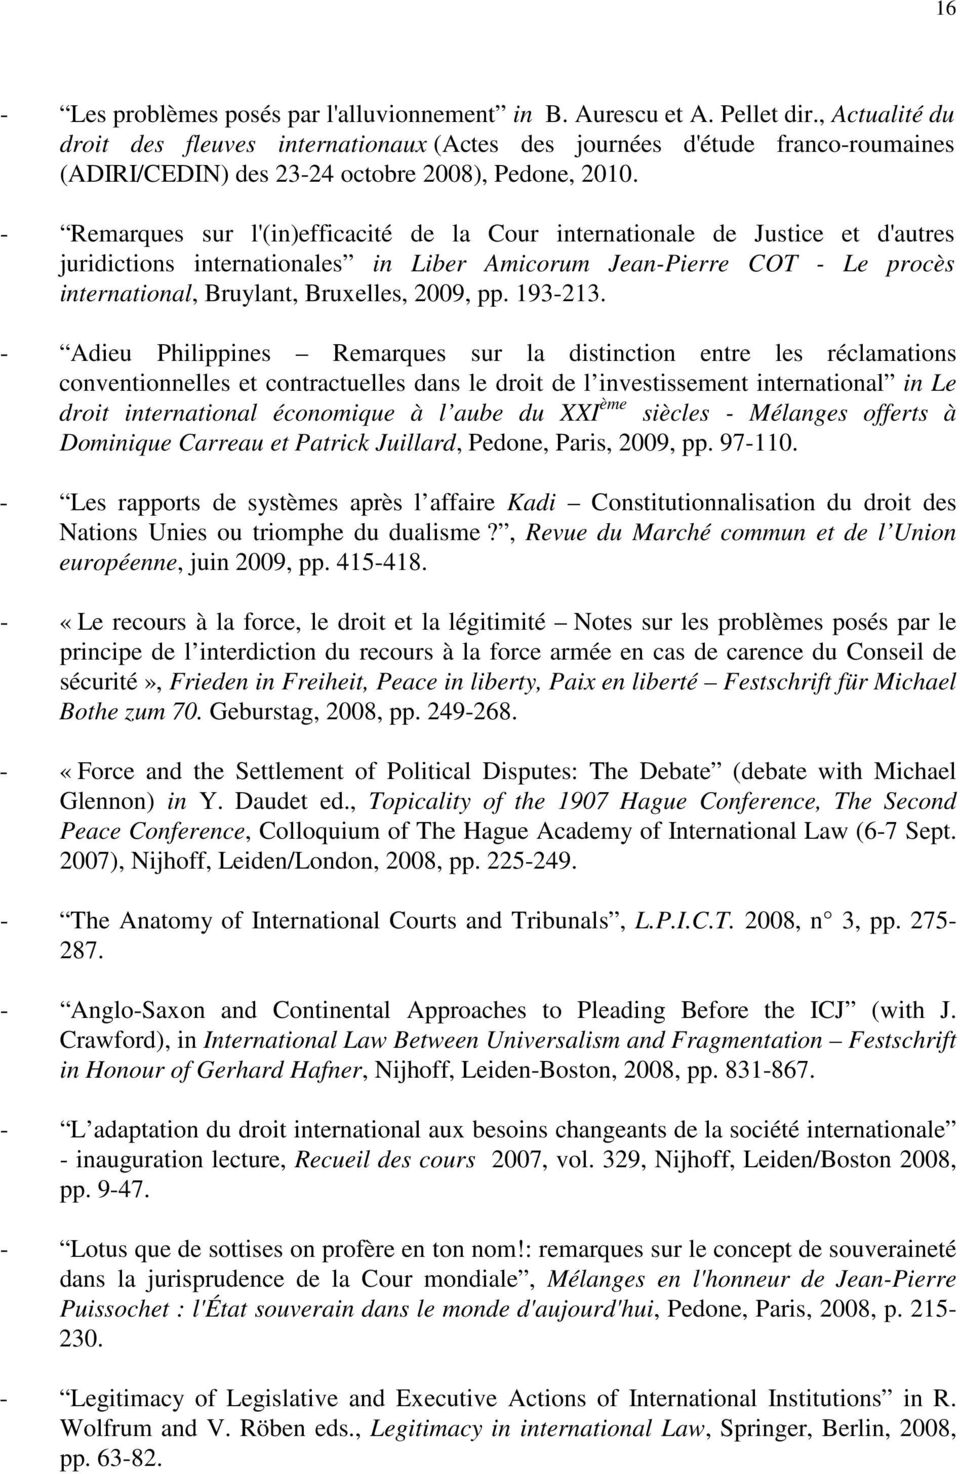 - Remarques sur l'(in)efficacité de la Cour internationale de Justice et d'autres juridictions internationales in Liber Amicorum Jean-Pierre COT - Le procès international, Bruylant, Bruxelles, 2009,